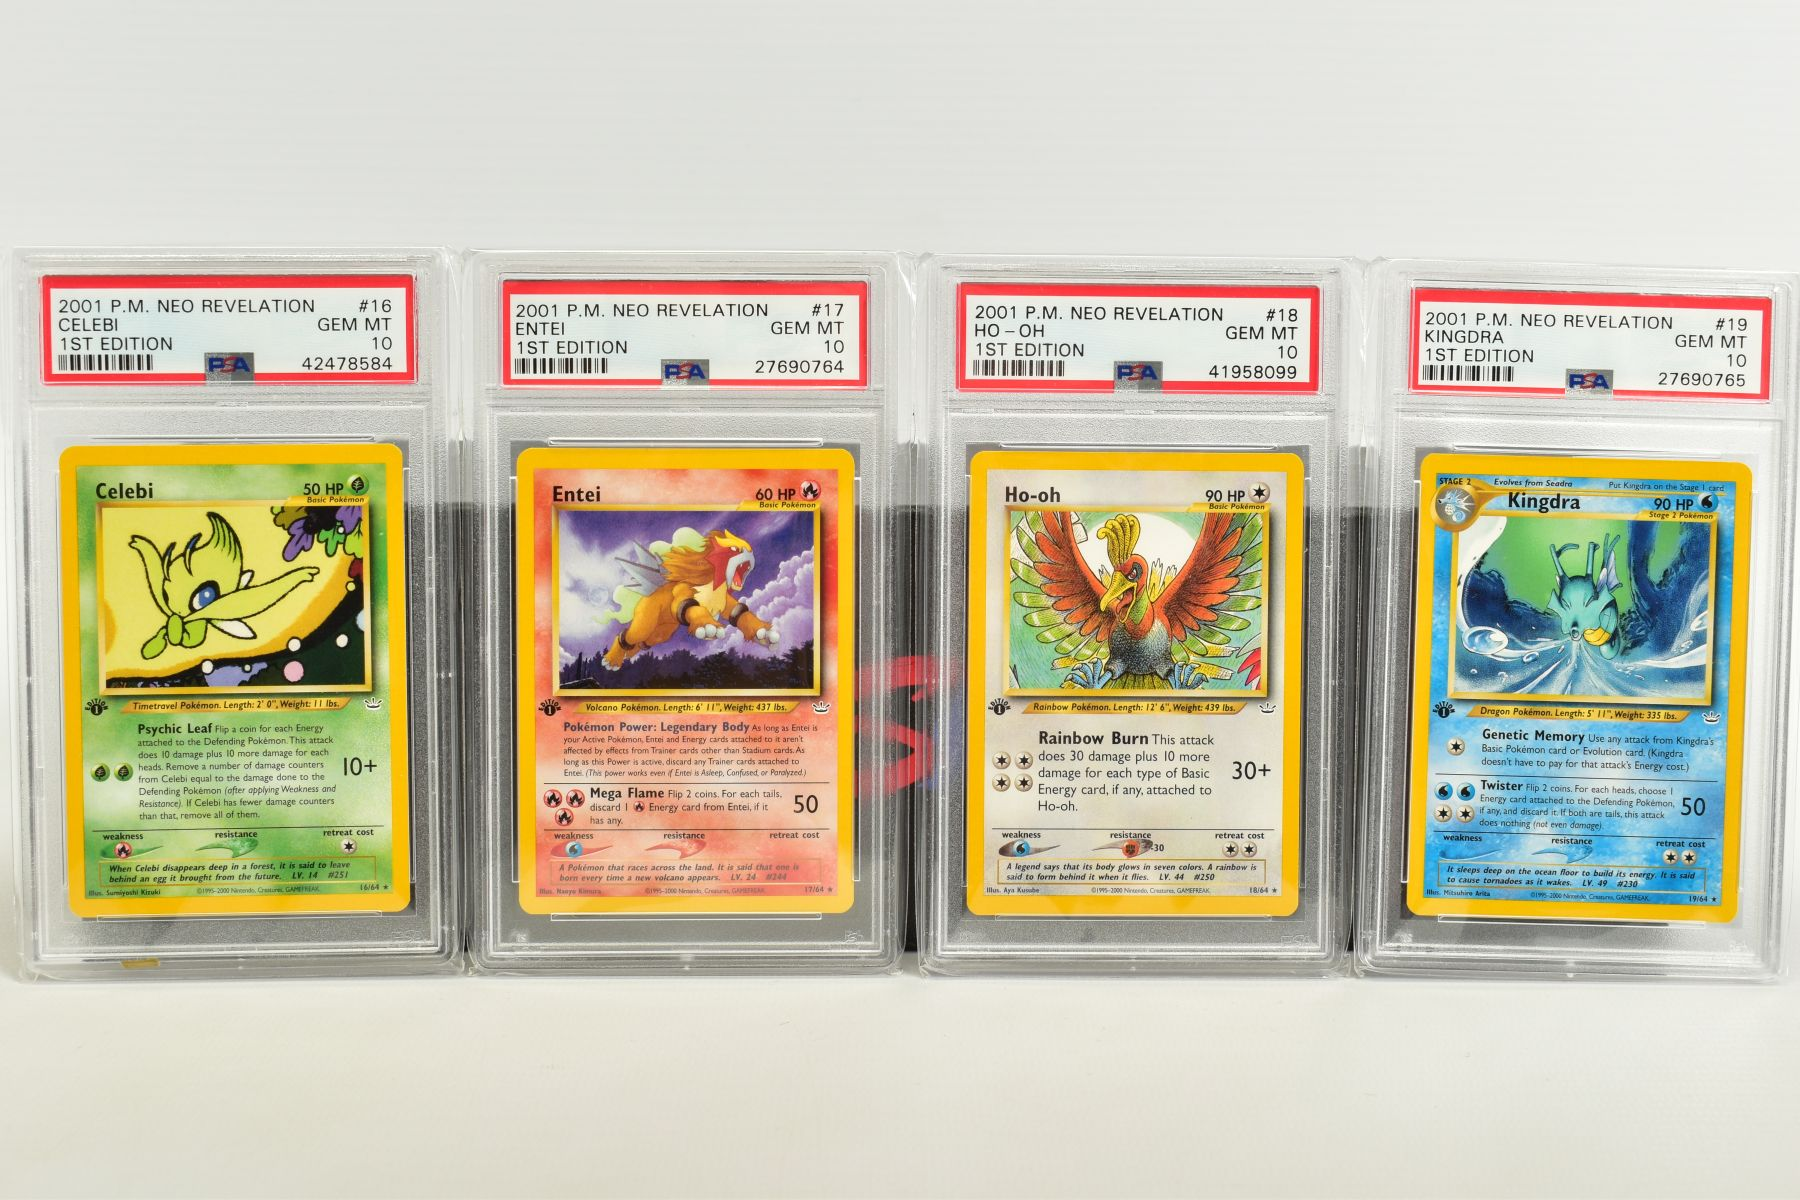 A QUANTITY OF PSA GRADED POKEMON 1ST EDITION NEO REVELATION SET CARDS, all are graded GEM MINT 10 - Image 3 of 14